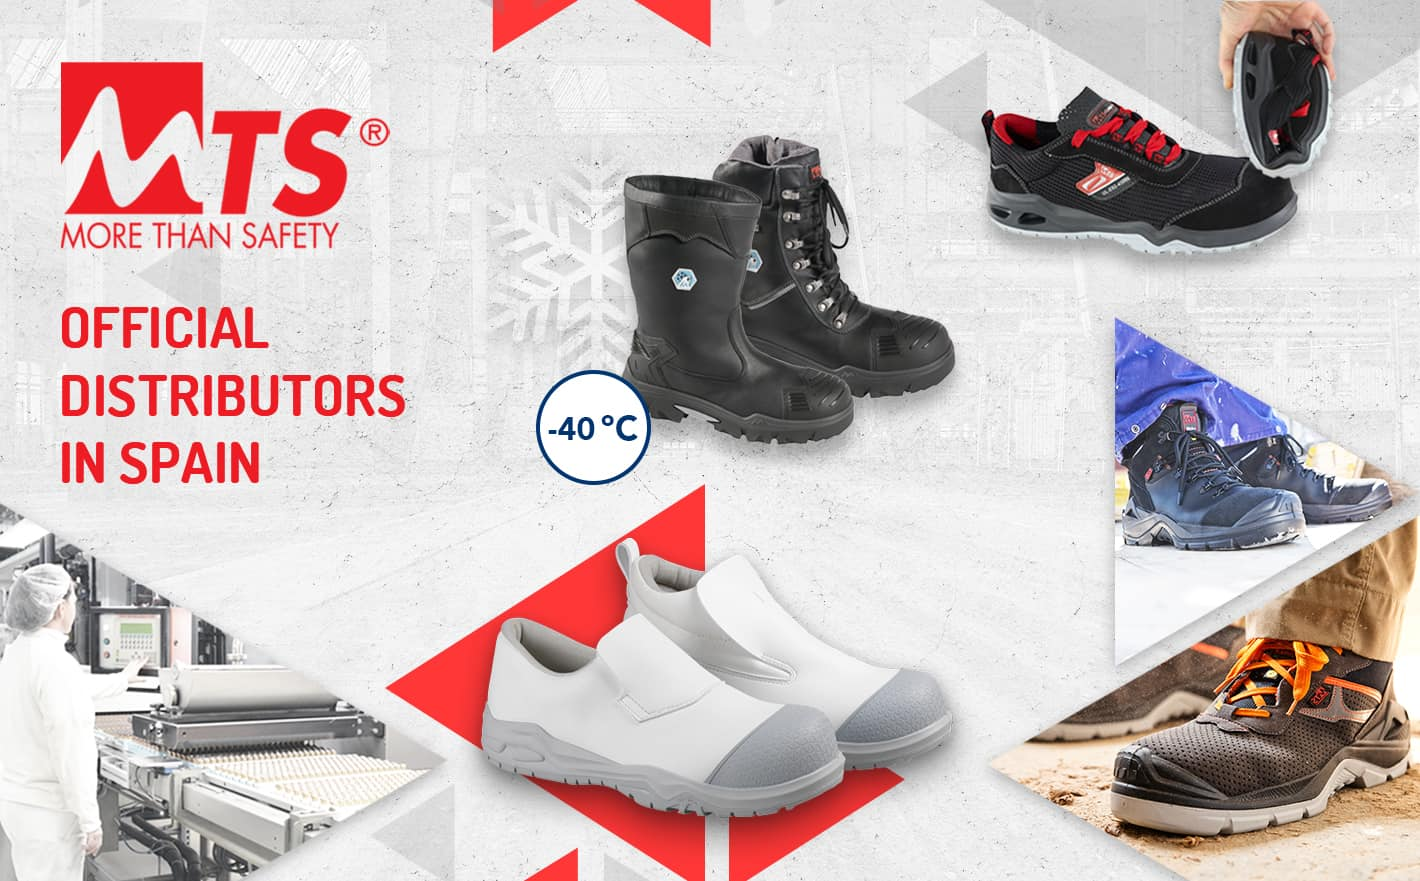 Official distributors of the MTS professional footwear brand in Spain | Reysan